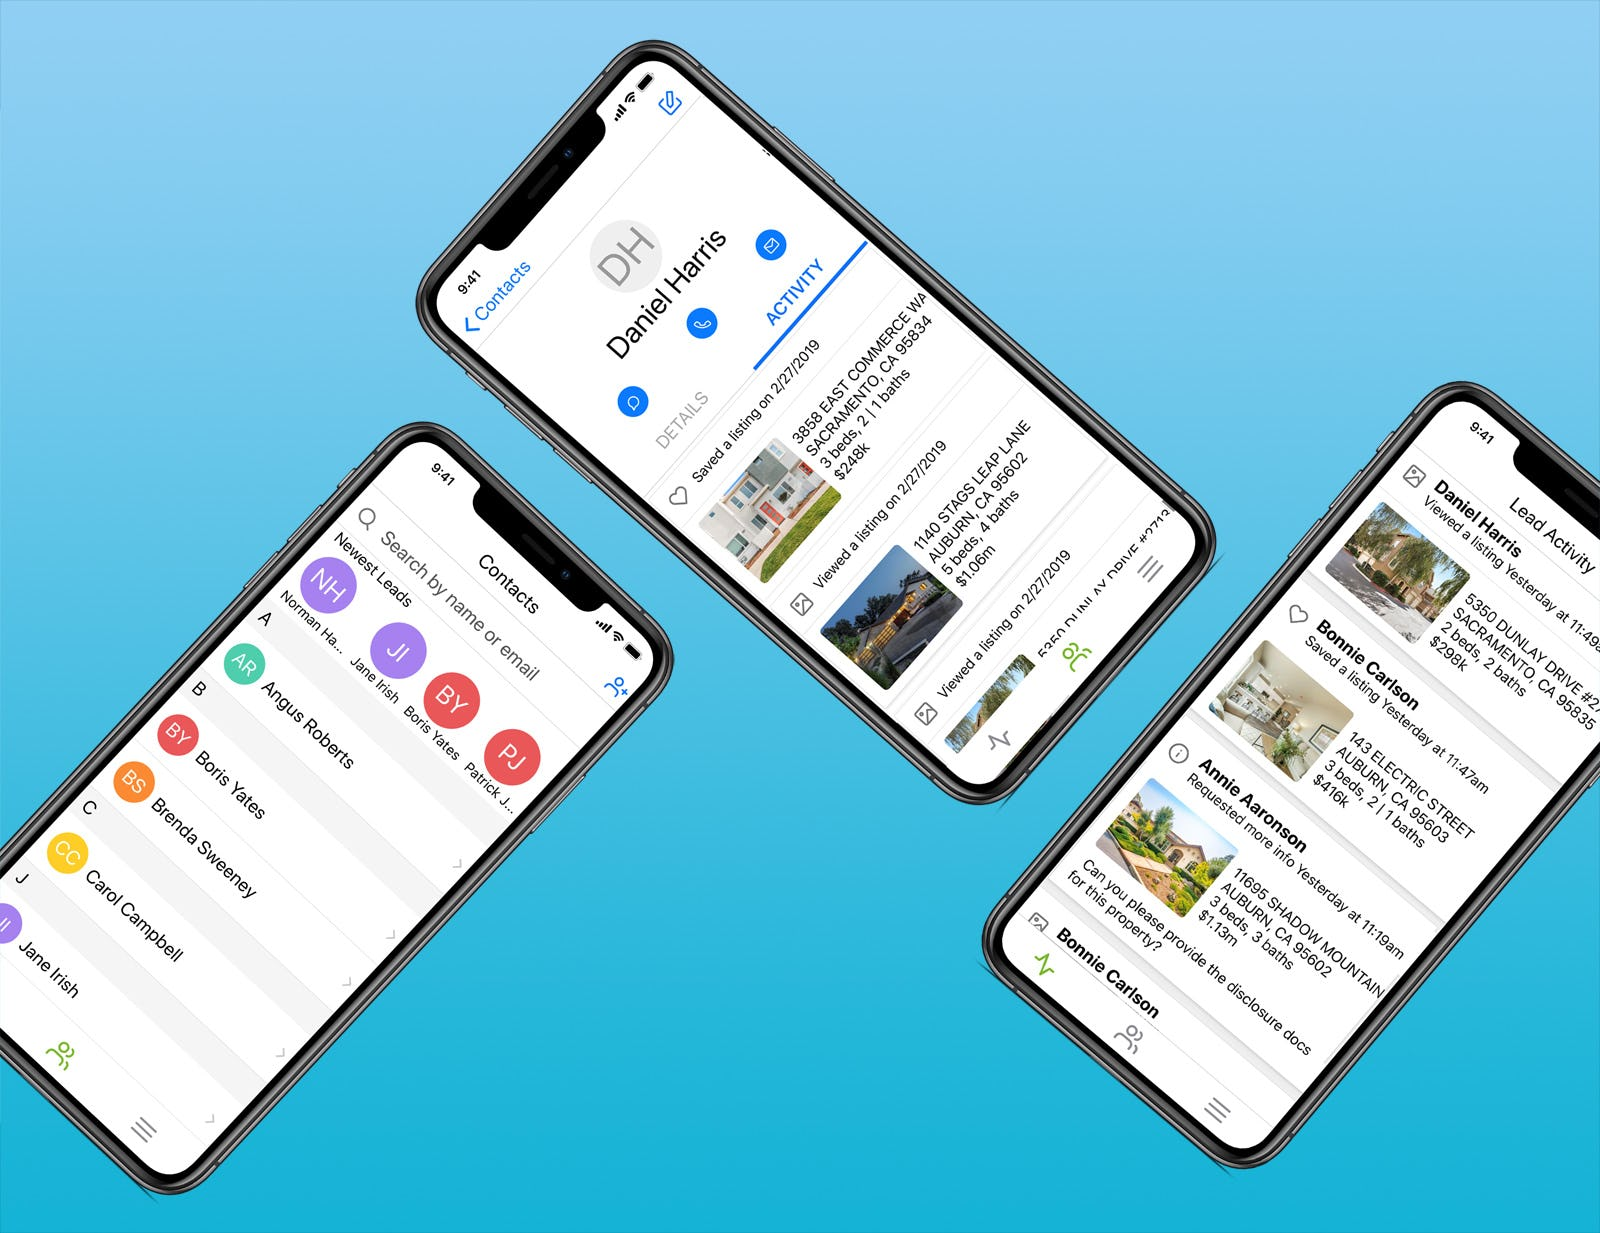 iHomefinder Software - Add, manage, and work your leads anywhere, anytime on your mobile devices with our Optima Leads, our mobile app for agents. Your important lead information and activity is always at your fingertips, without requiring a login.